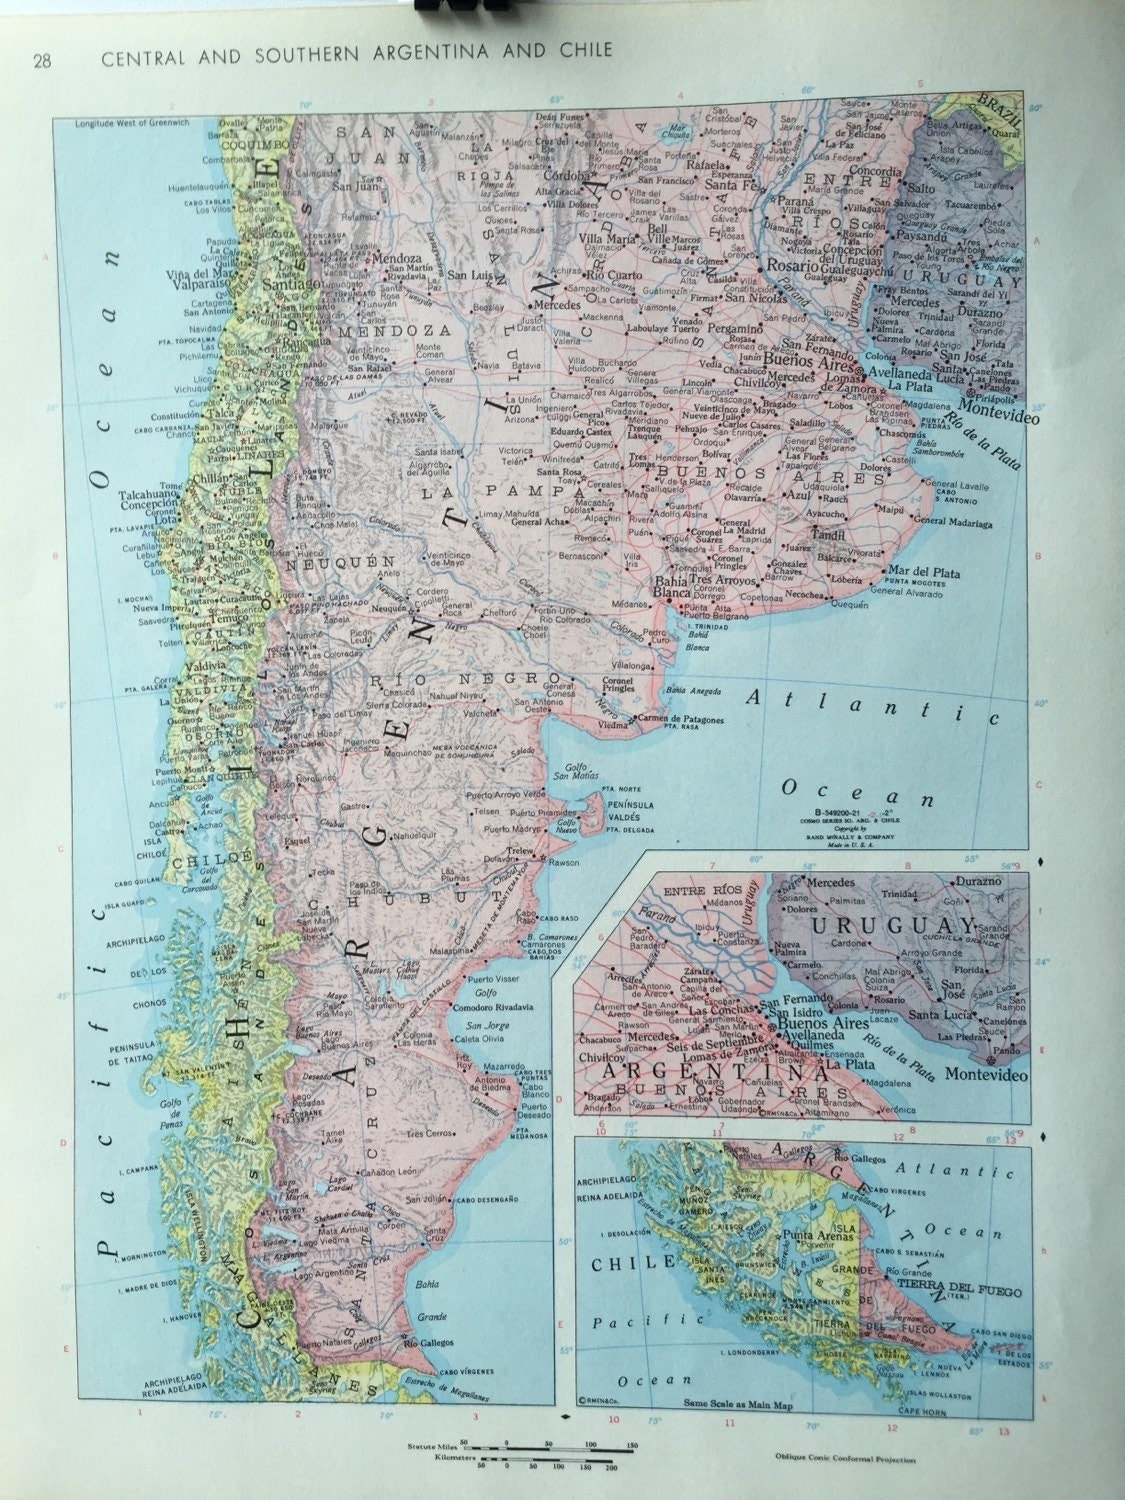 Vintage 1967 rand mcnally world atlas map page south america on 500 gumiabroncs Images